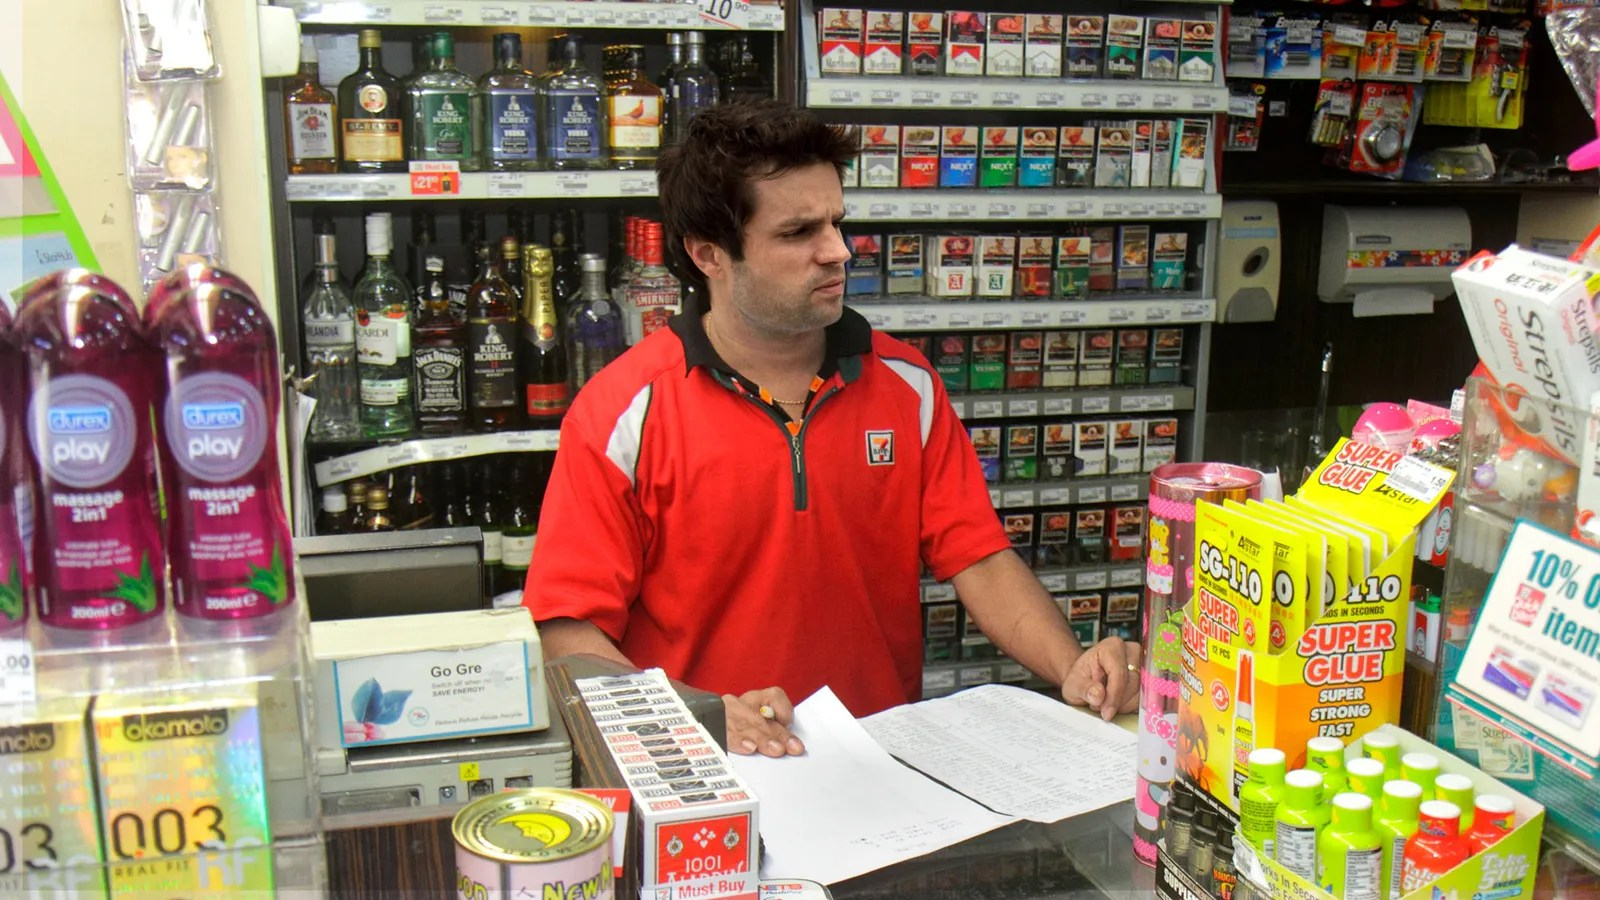 Customers Relieved To See Perky 7-Eleven Cashier's Spirit